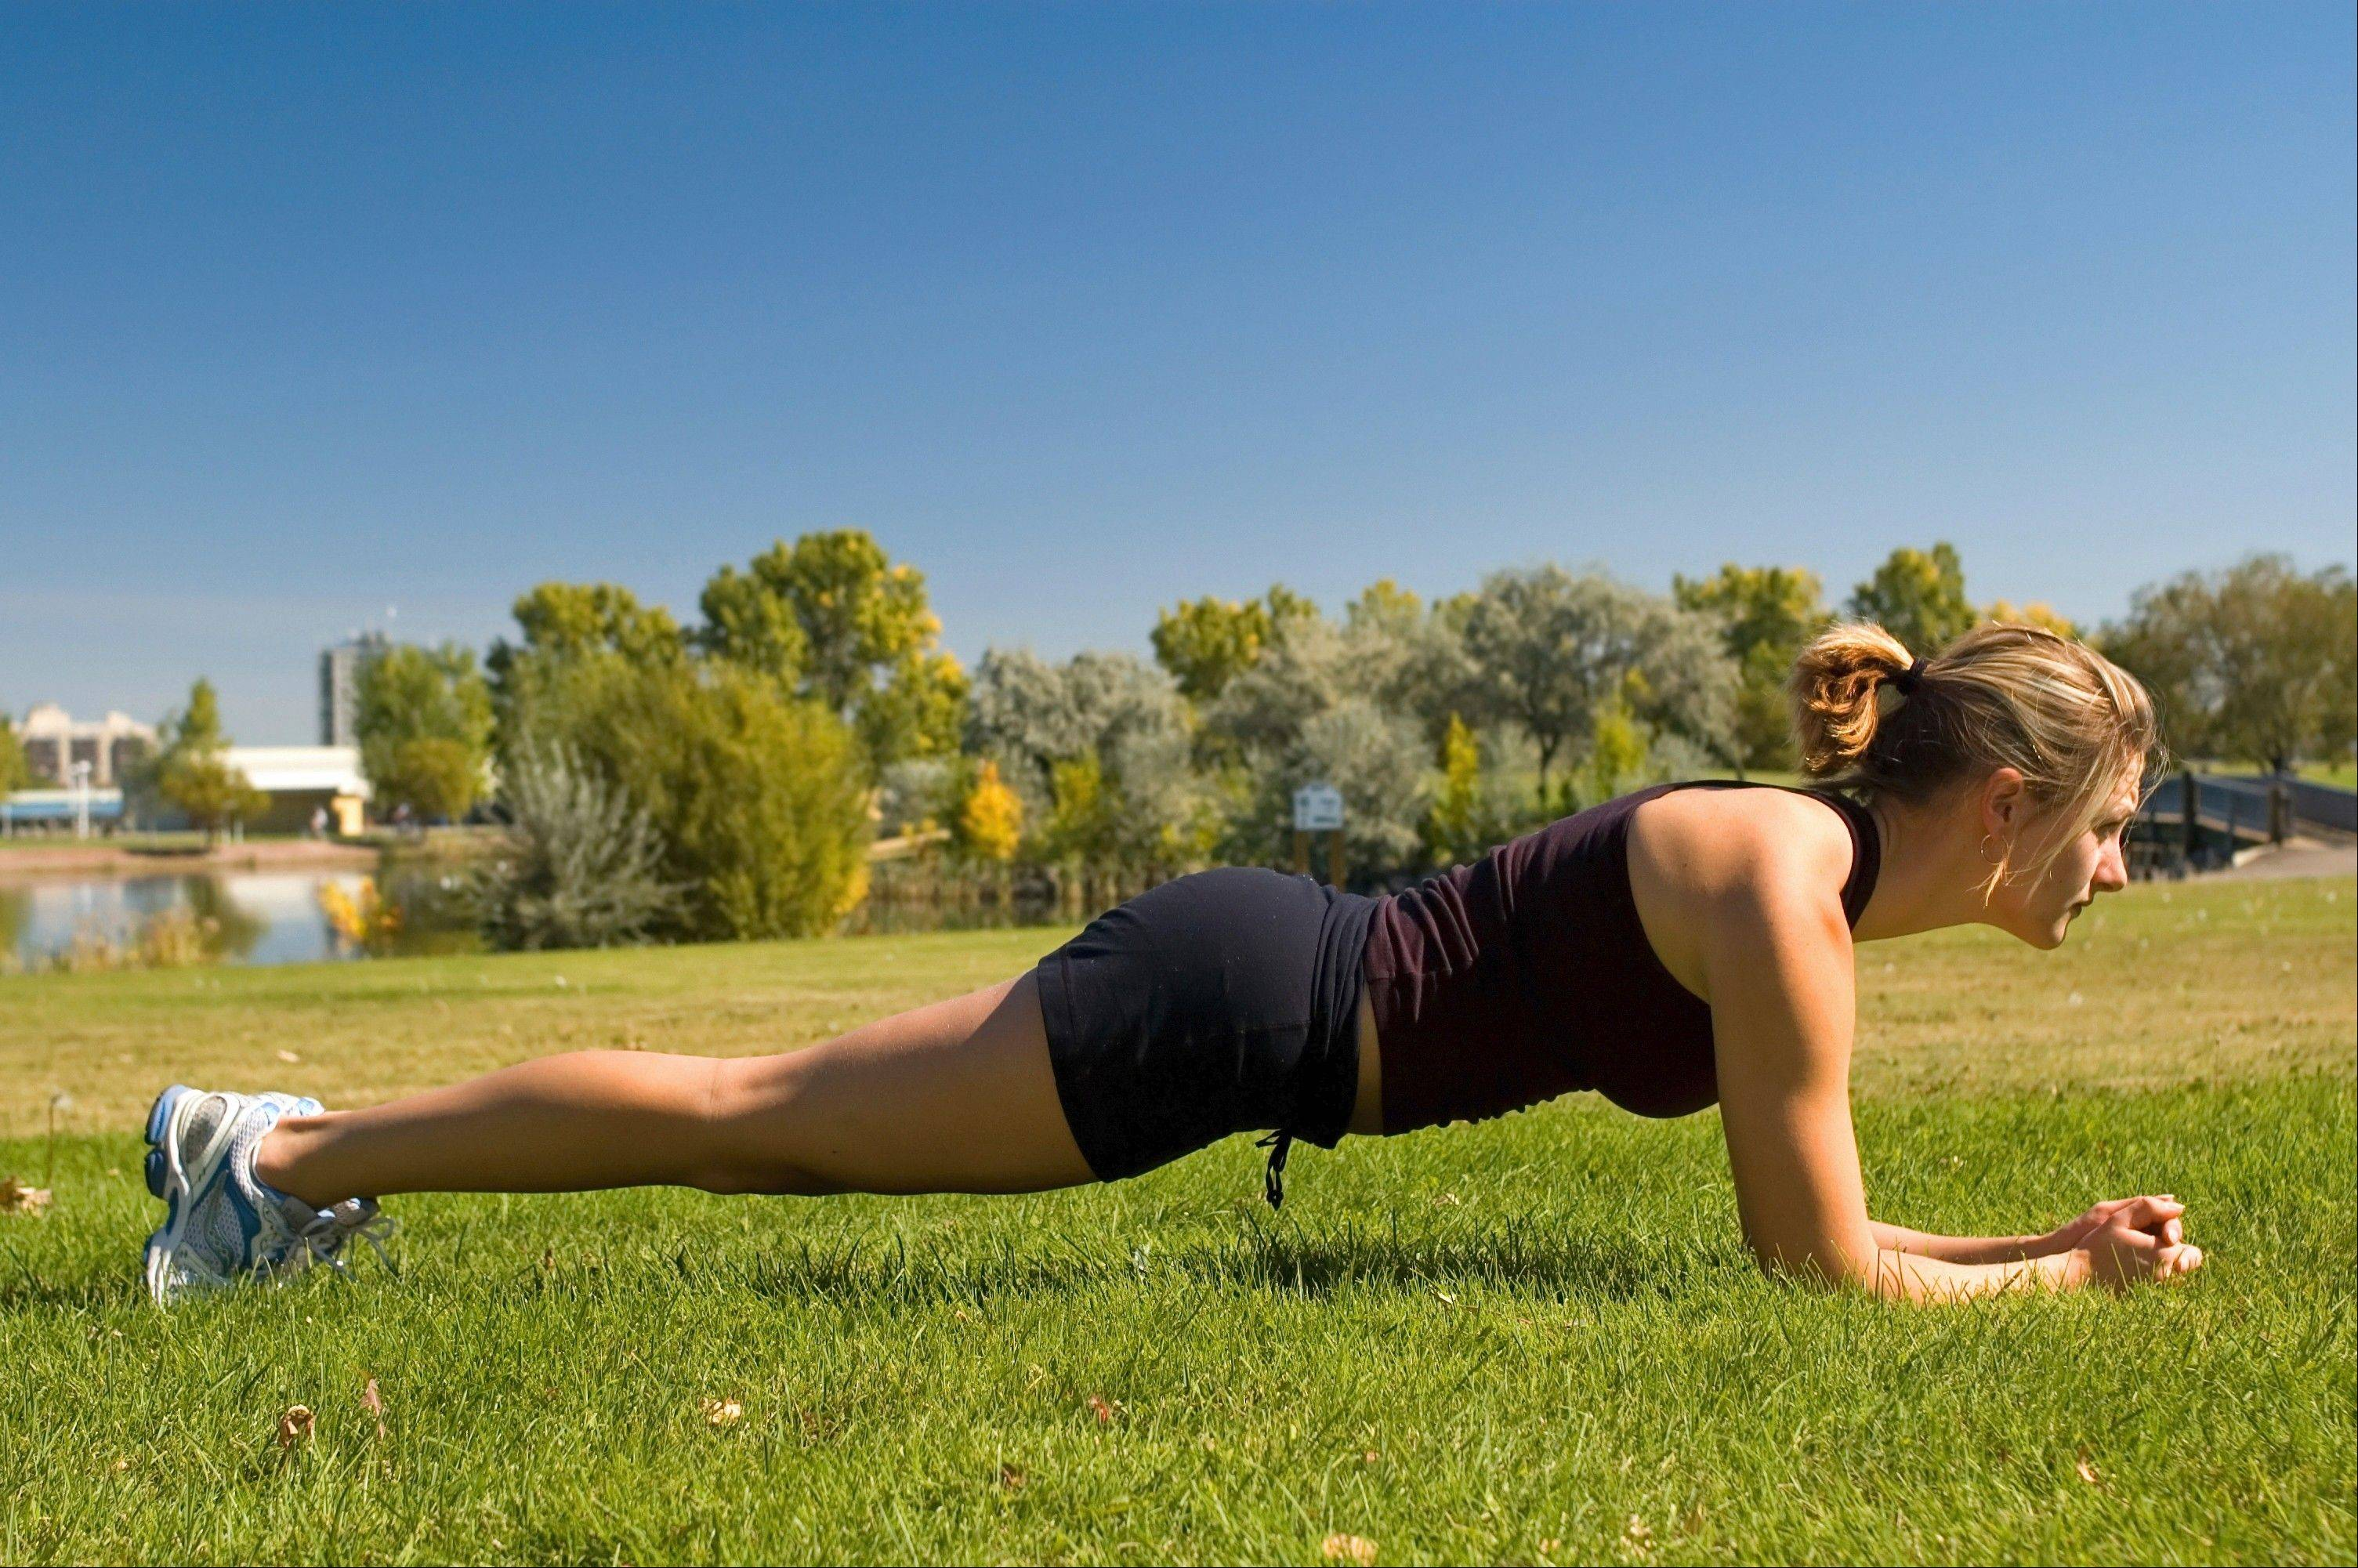 Doing a plank works your core better than sit-ups.